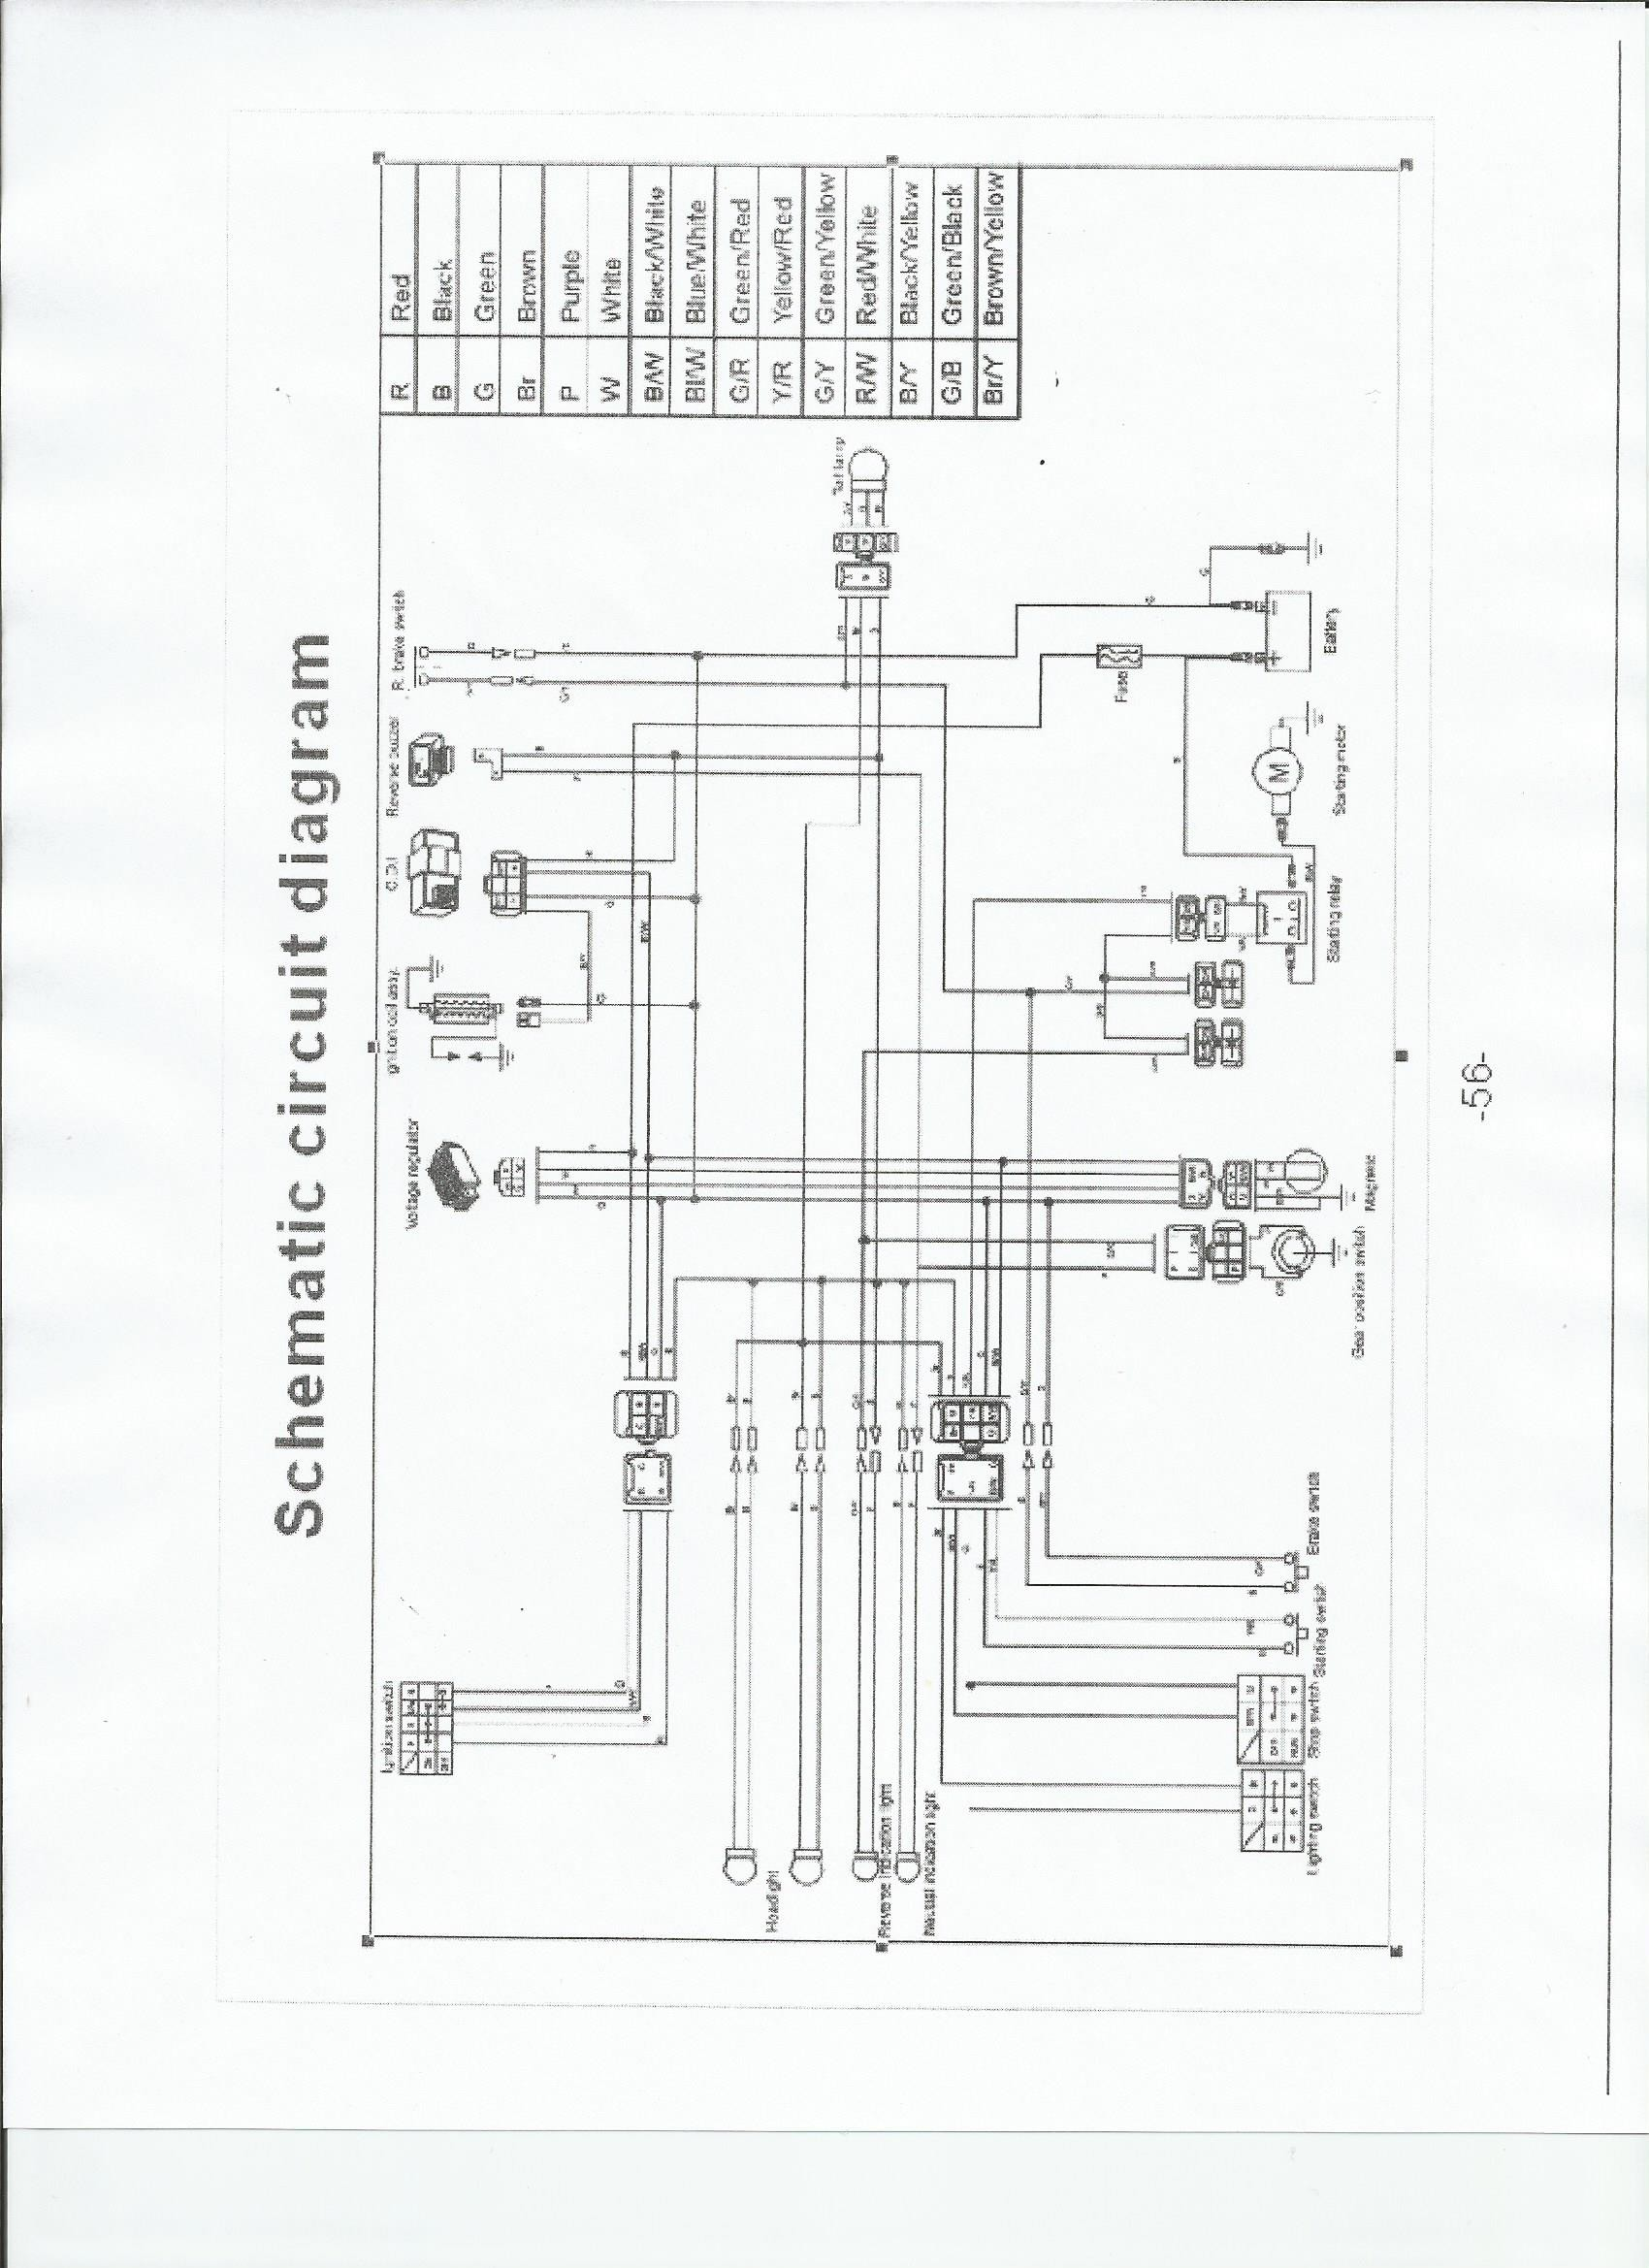 Phenomenal Kazuma Go Kart Wiring Diagram Today Diagram Data Schema Wiring Digital Resources Dylitashwinbiharinl